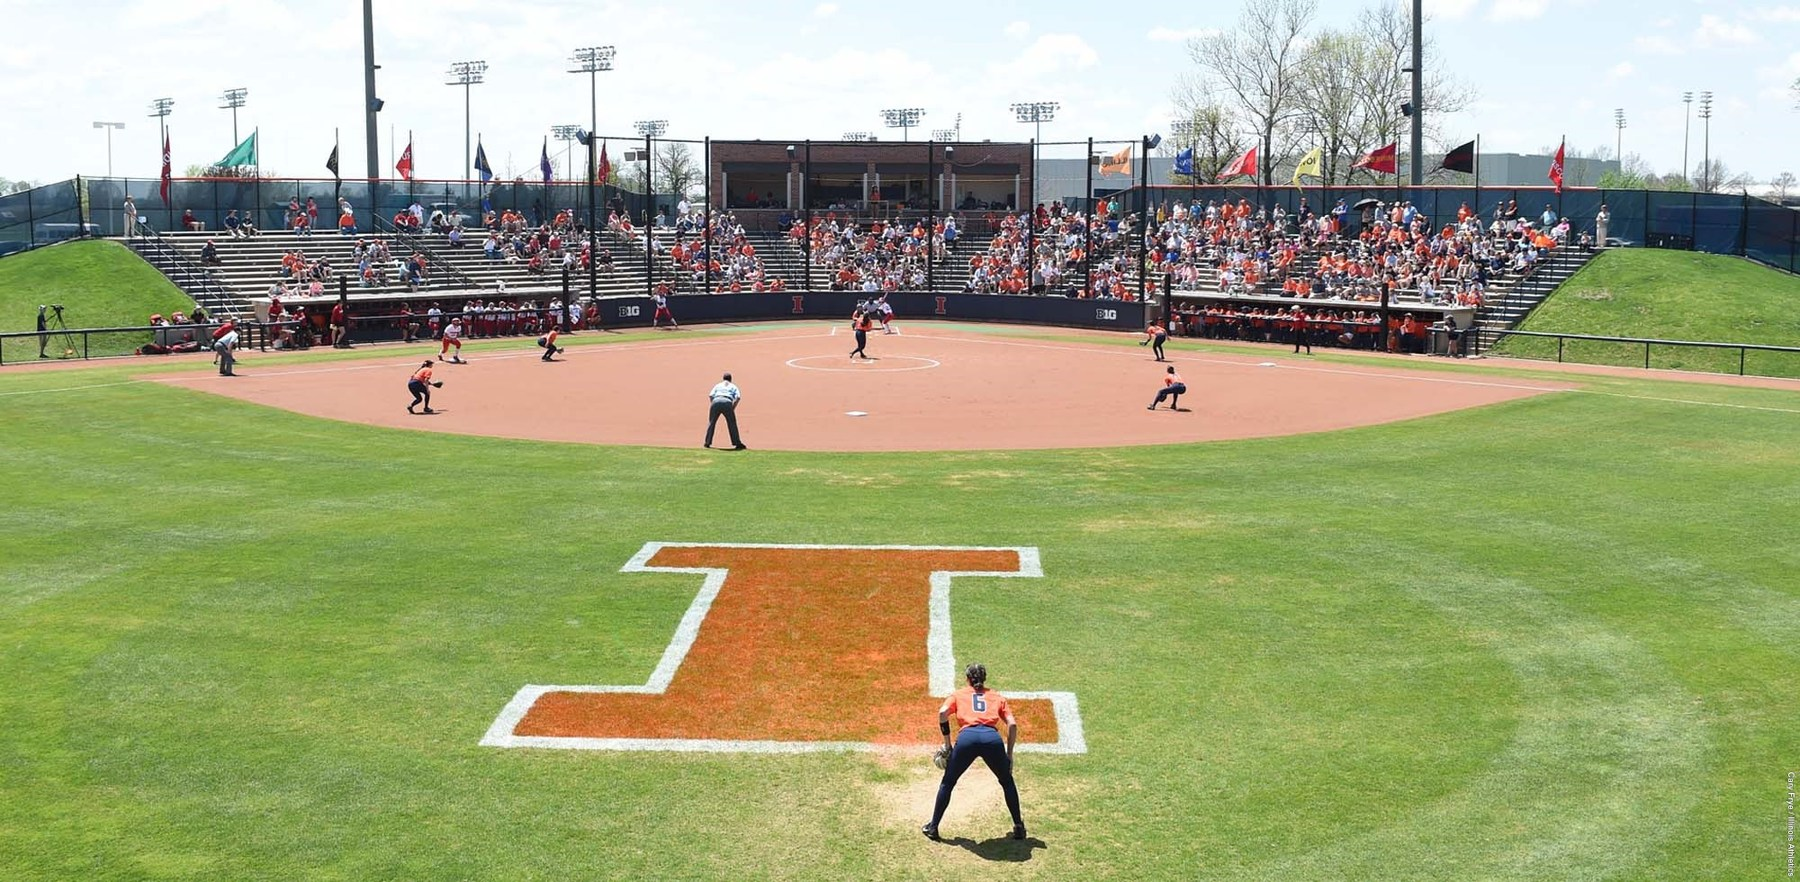 wide view of Eichelberger Field with an Illini Softball game ongoing